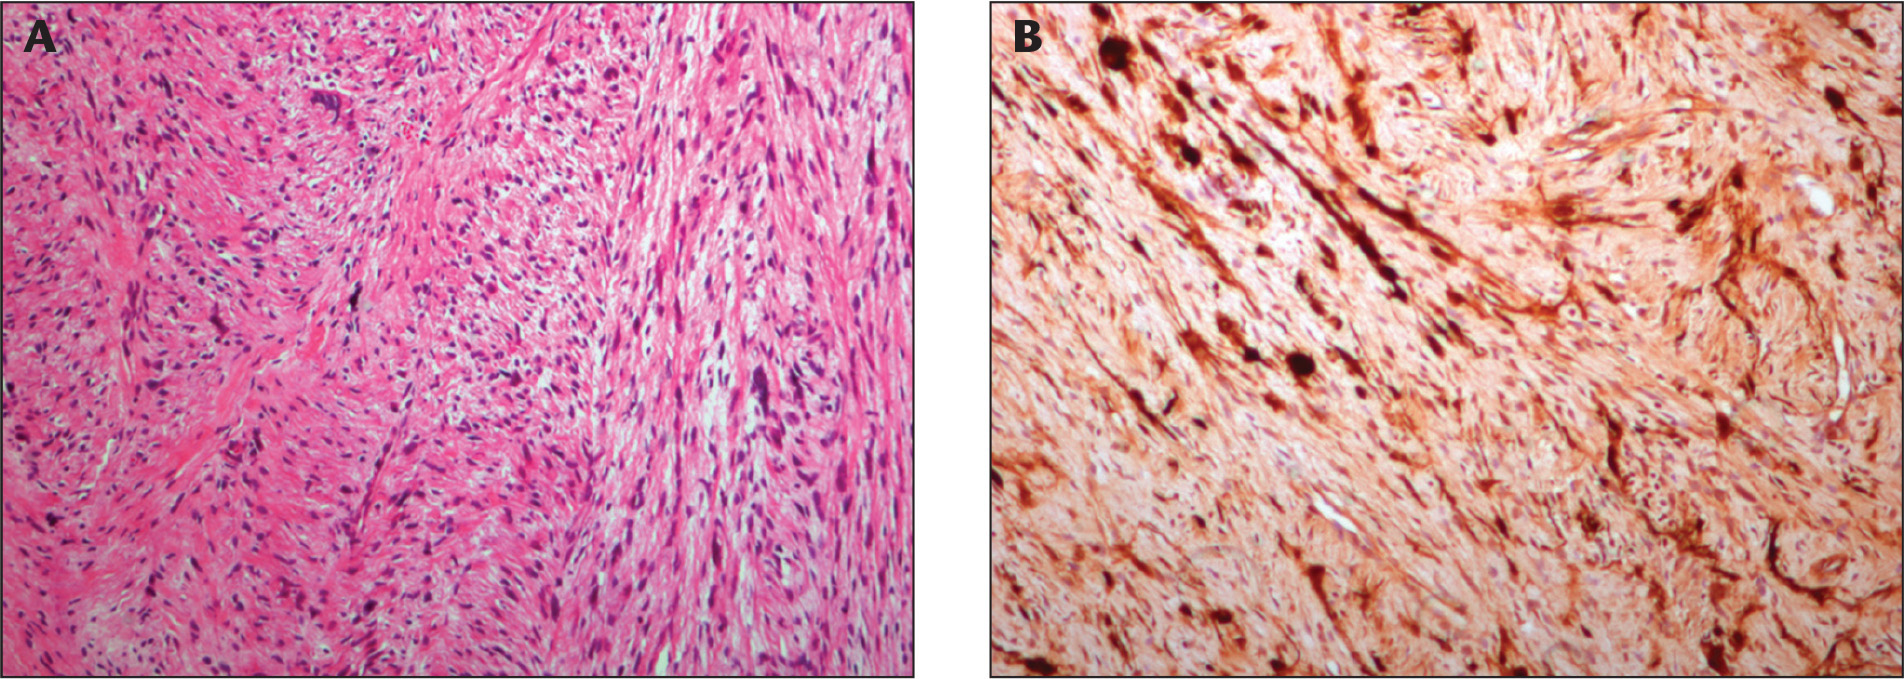 Histopathological sections show (A) fascicles of spindle cells with pleomorphic nuclei (hermatoxilyn–eosin, original magnifica-tion ×40) and (B) diffuse positive staining for S-100 (S-100, original magnification ×100).